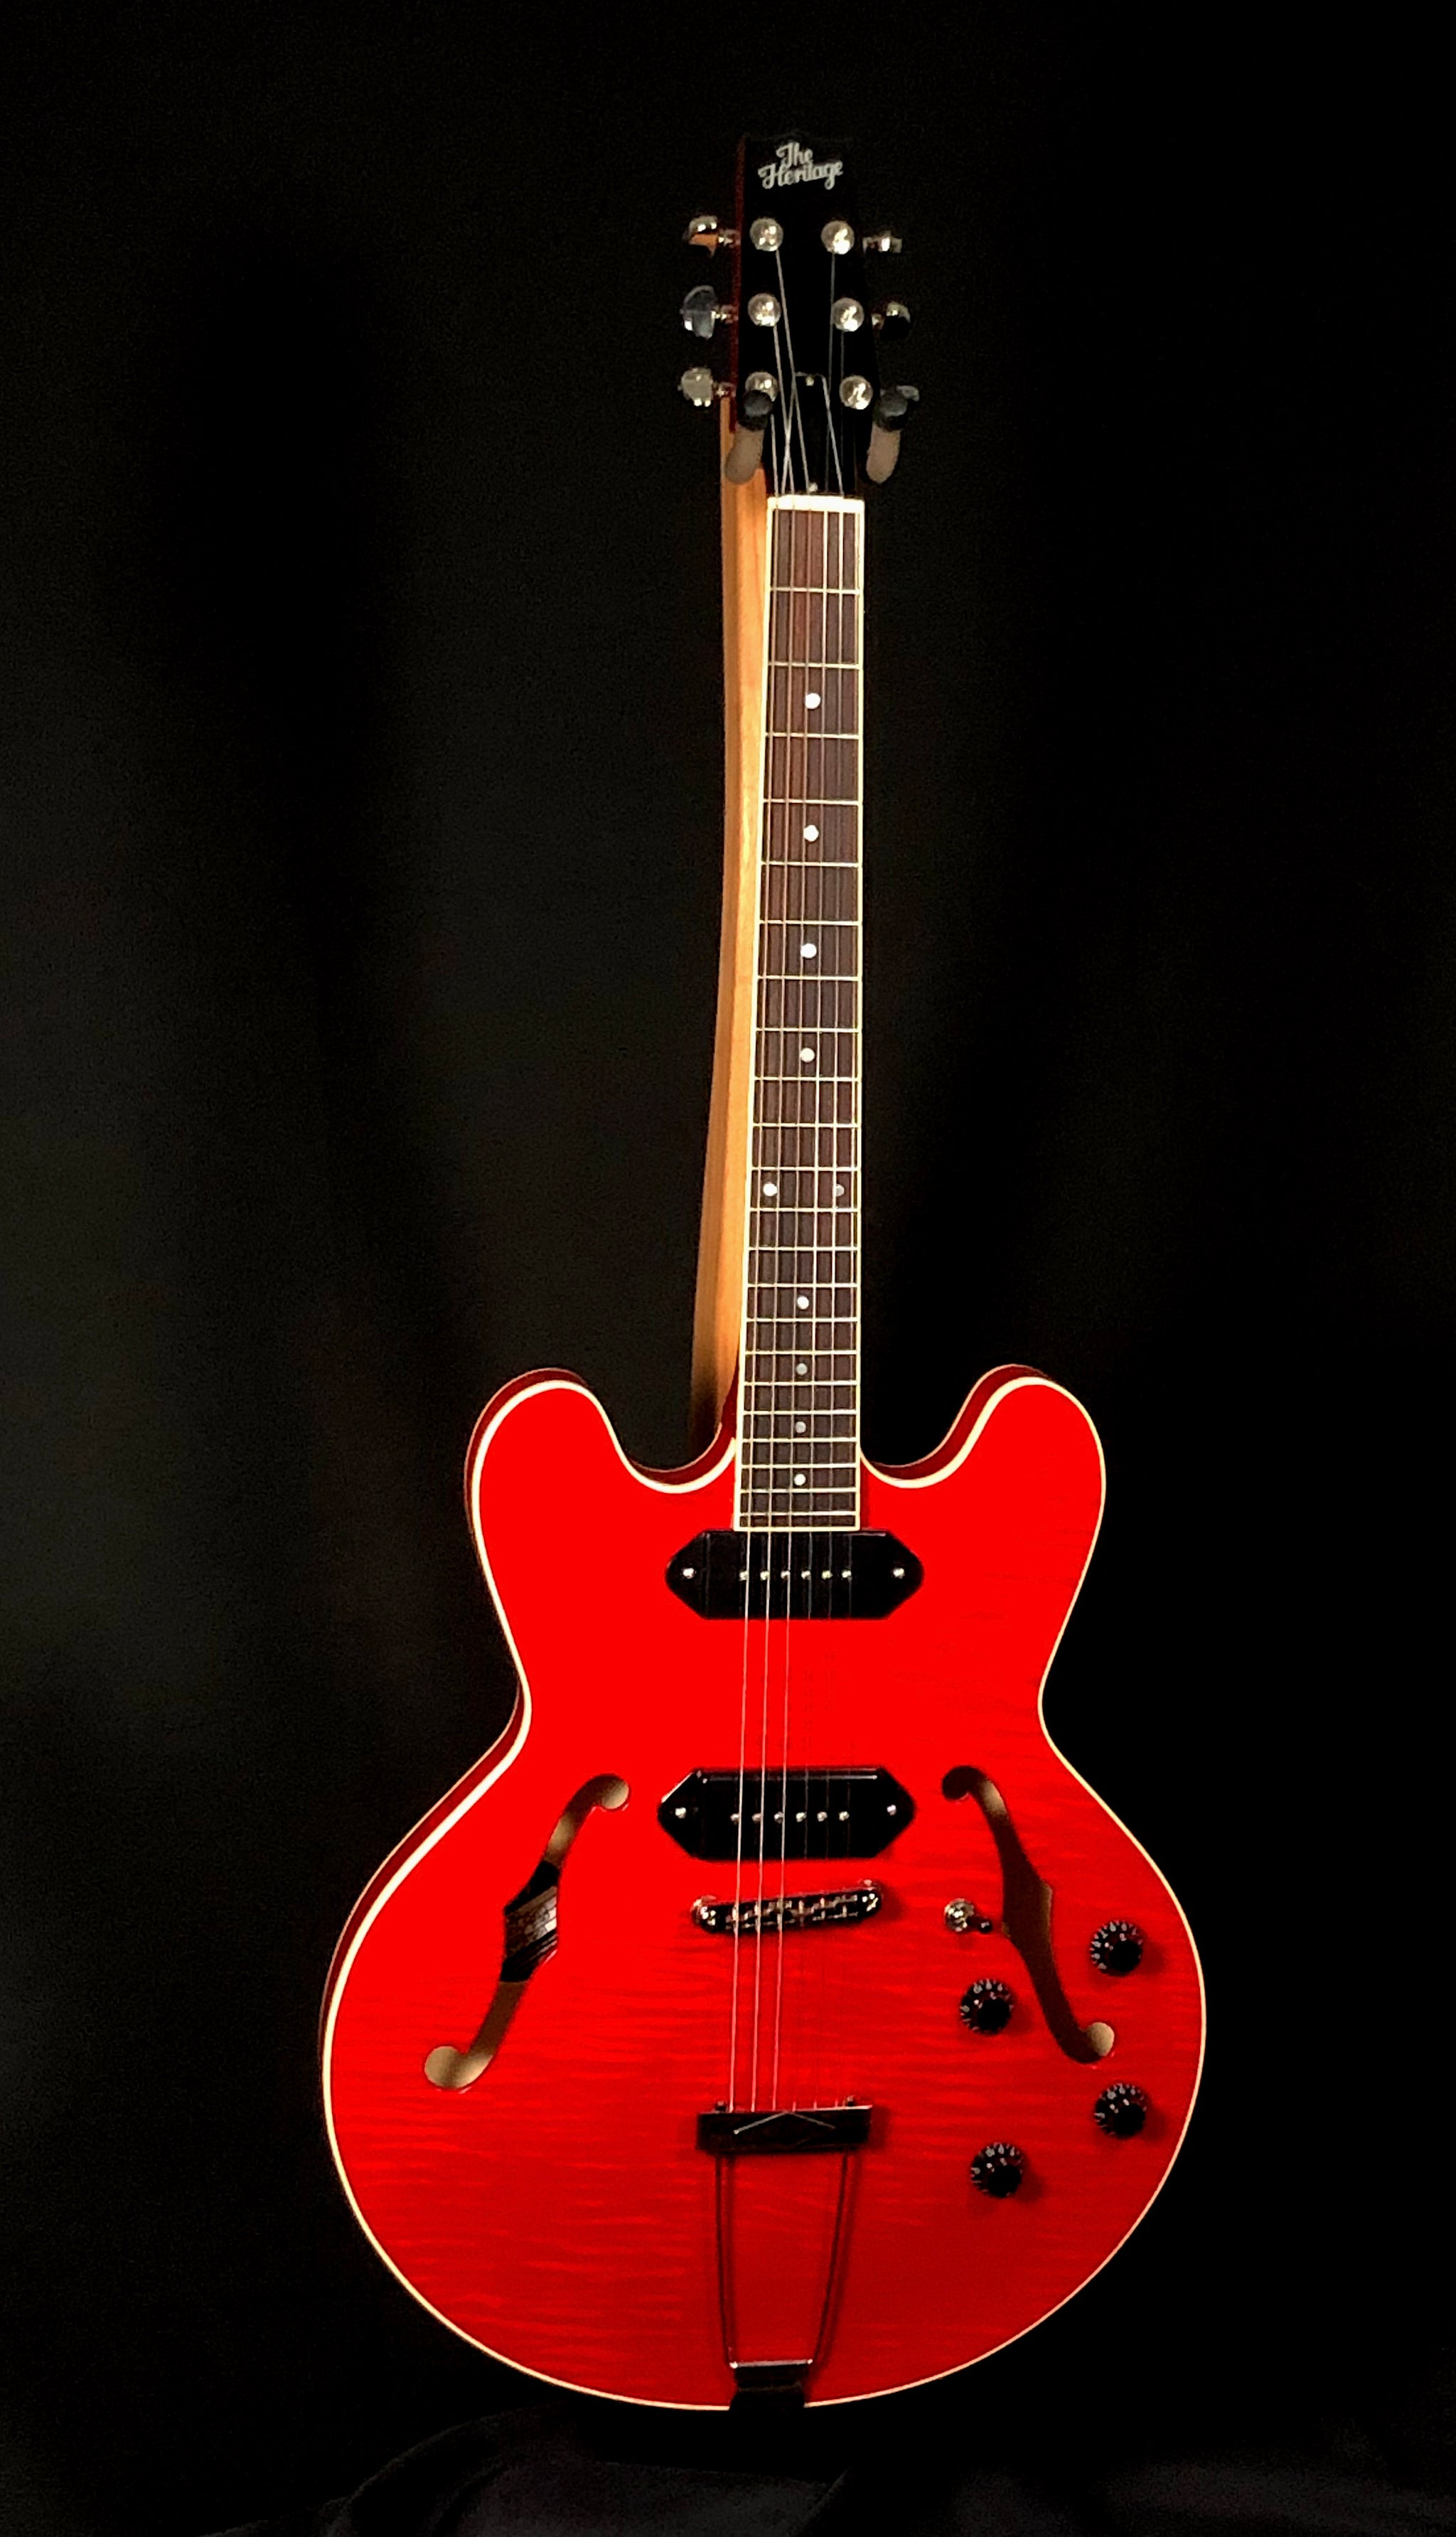 **** SOLD **** H530 Thinline  in Translucent Cherry